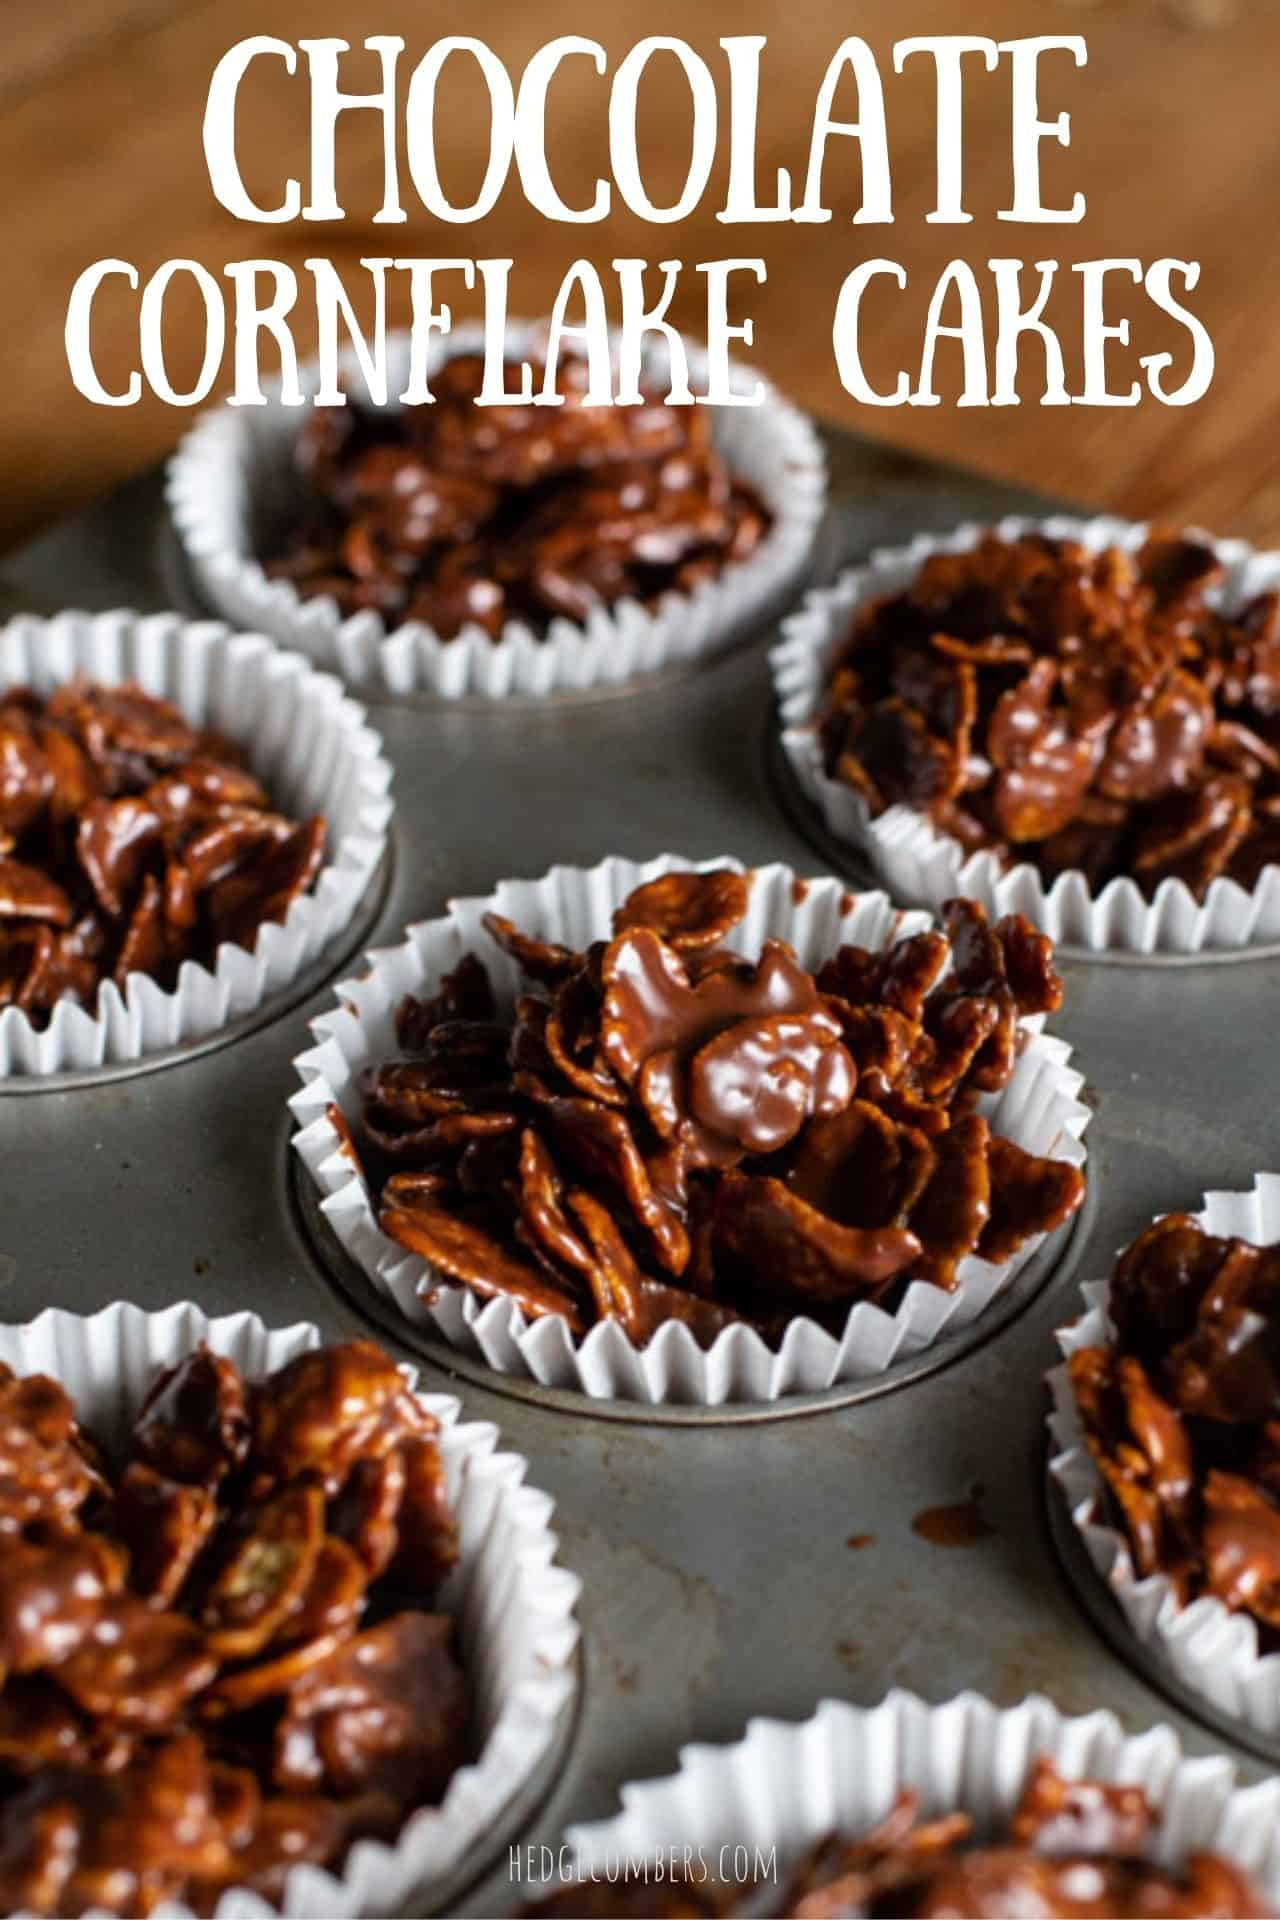 chocolate covered cornflake cakes in white paper cases in a metal baking tray